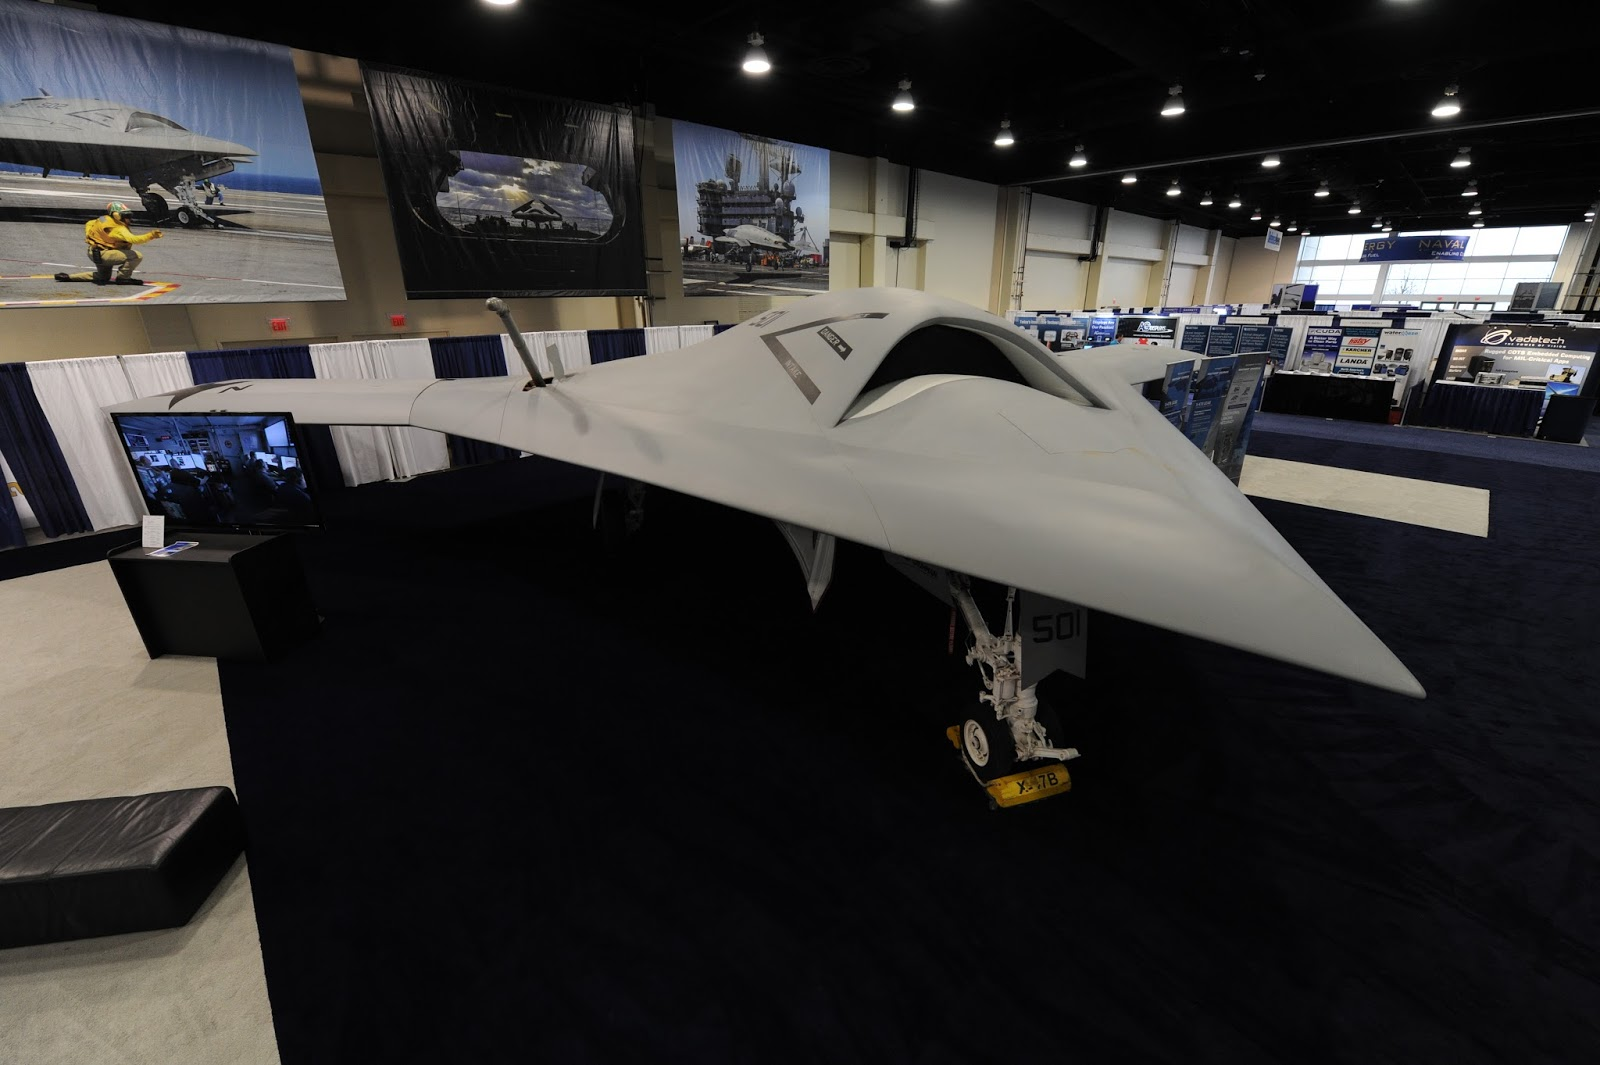 Of all the photographs of the Navy's X-47B from the exposition, mine was the only one mine was the only one I saw taken from above.